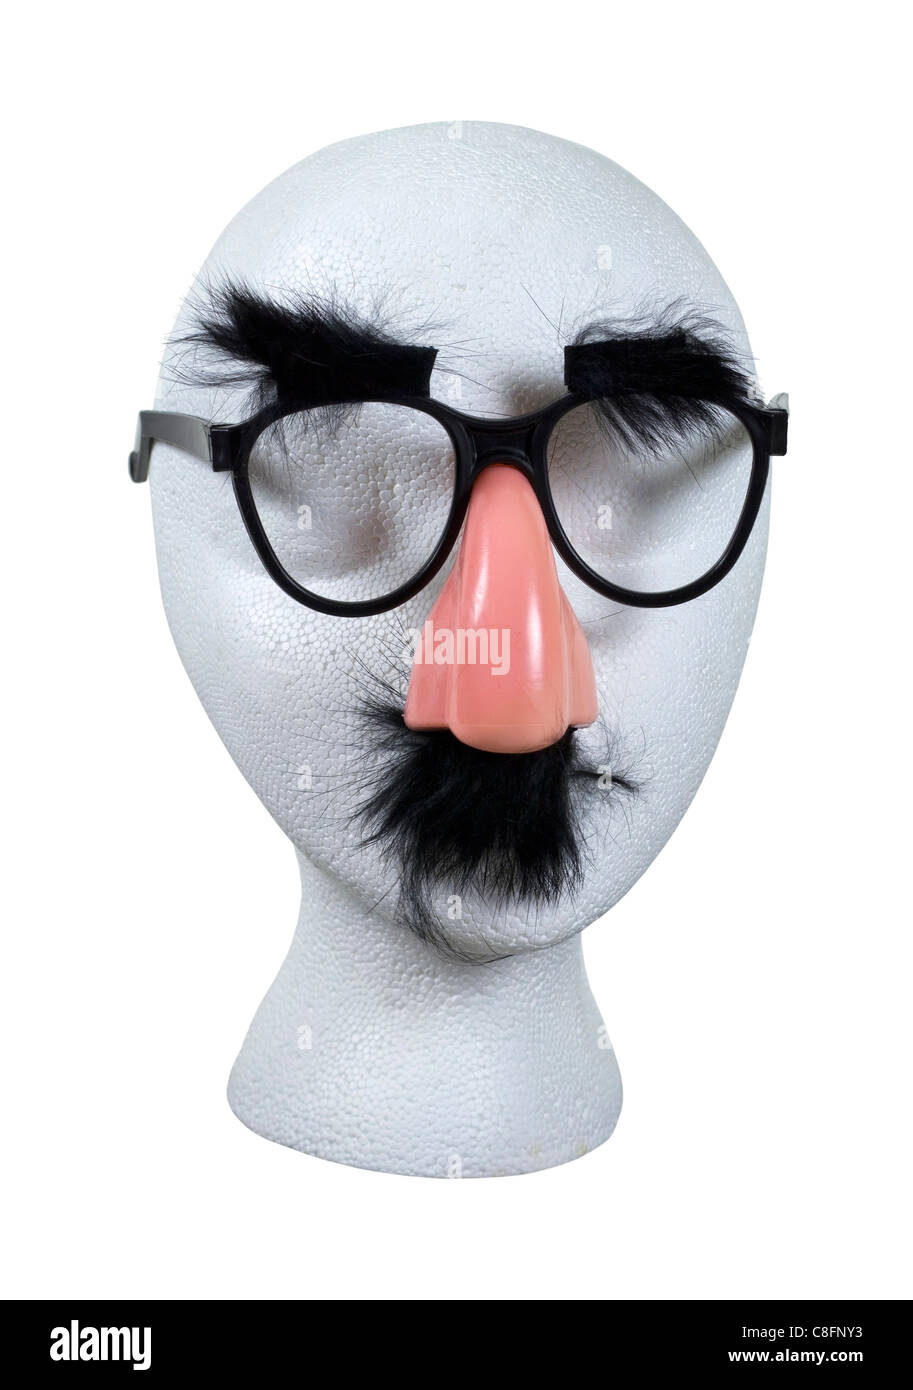 602f72fd5be A pair of glasses used to magnify the fine print with a mustache and  eyebrows -